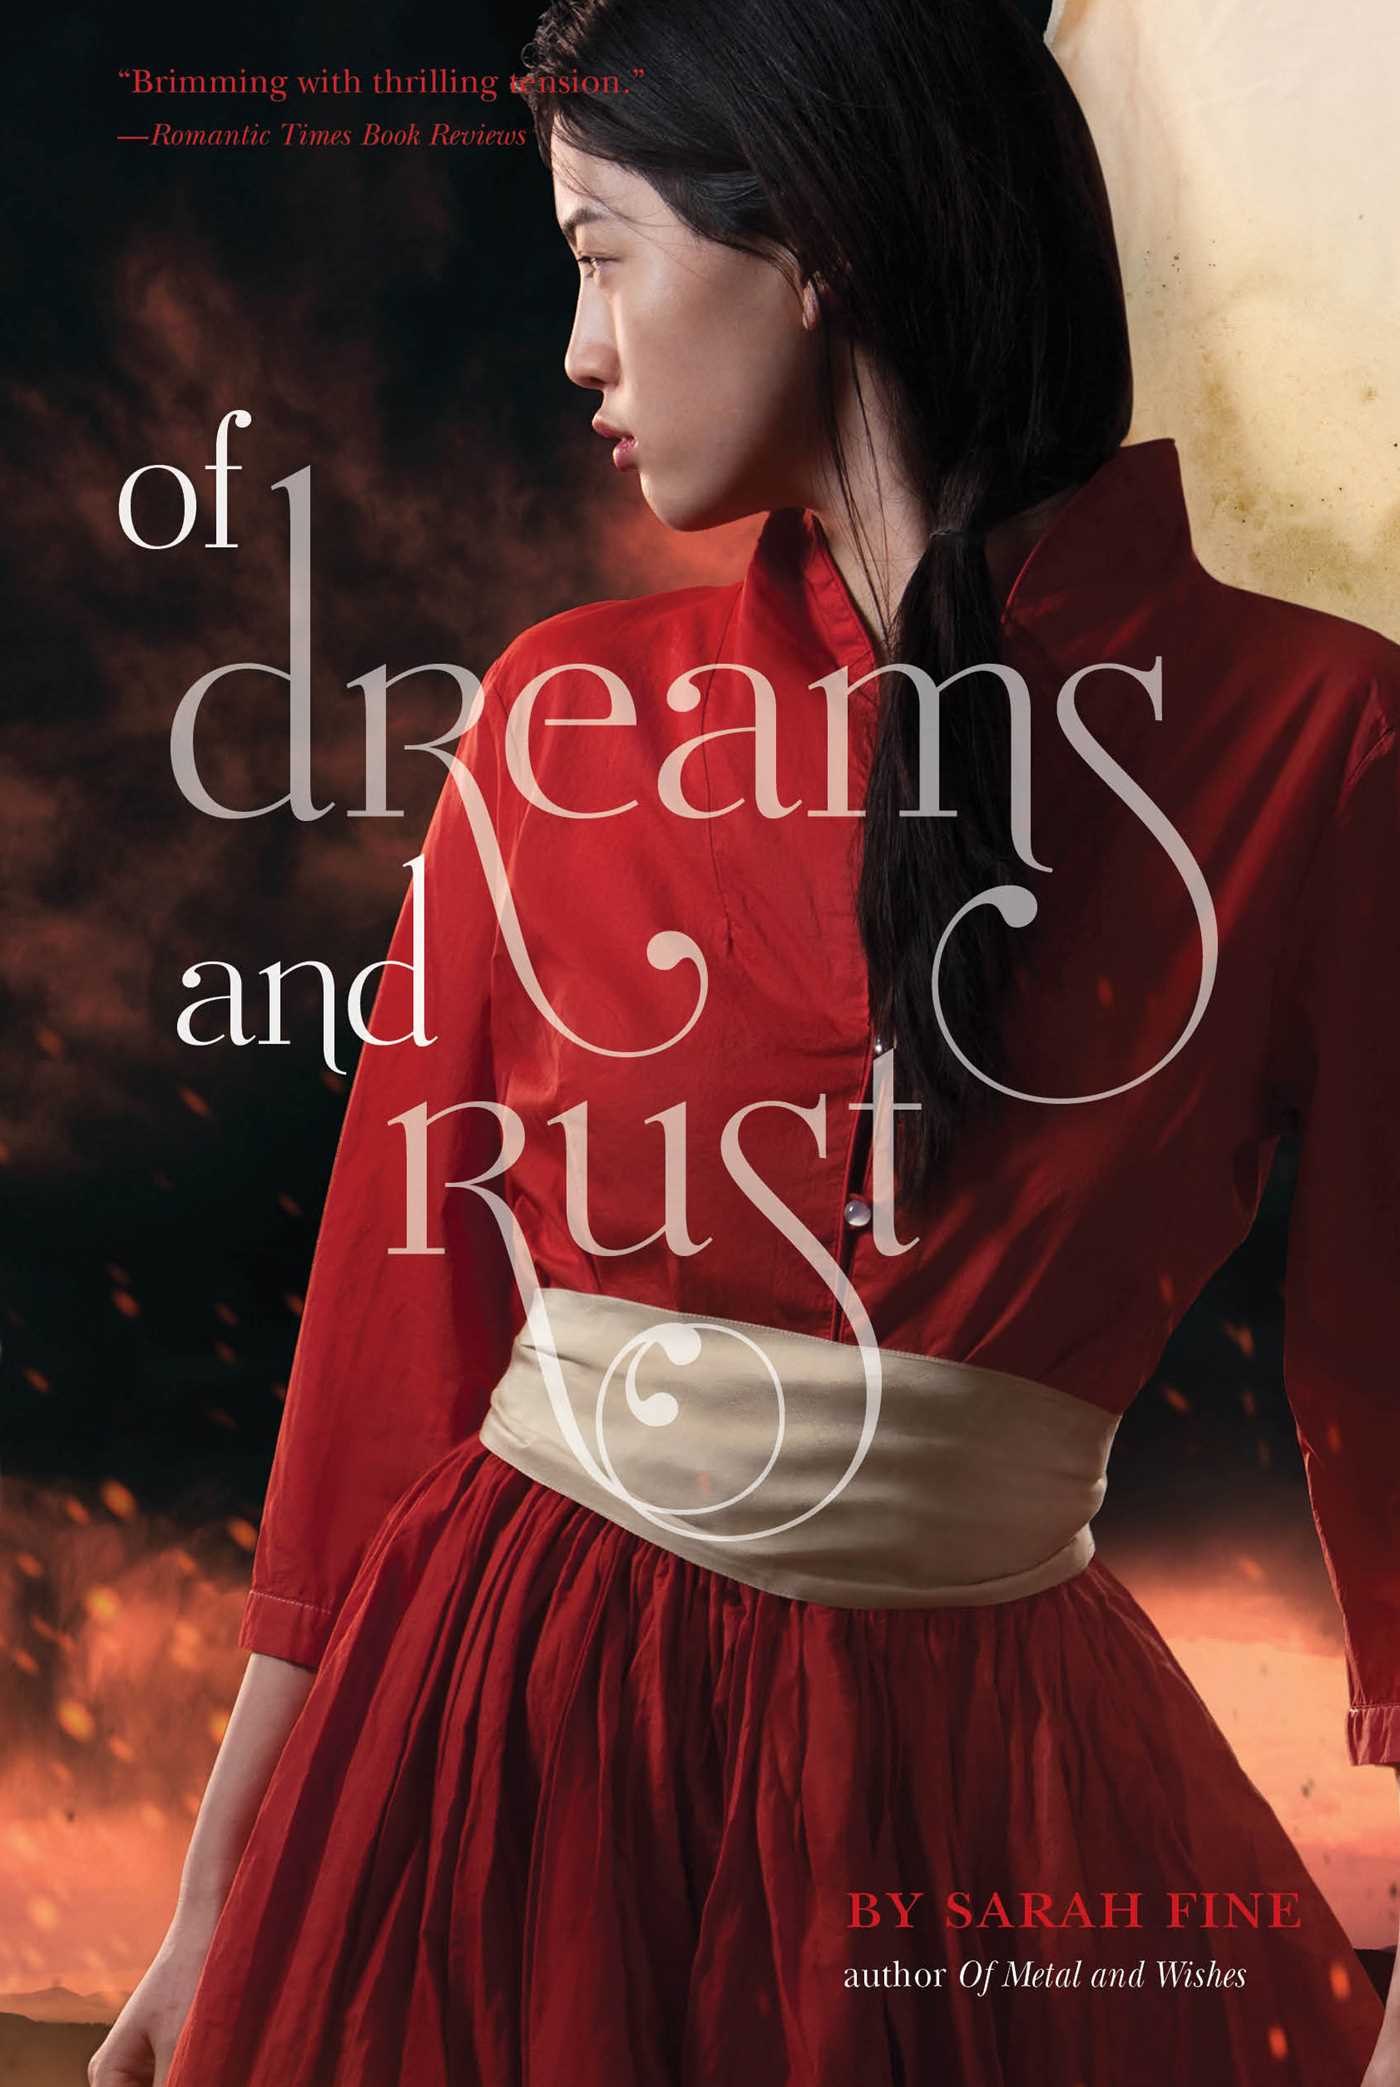 Of dreams and rust 9781442483620 hr